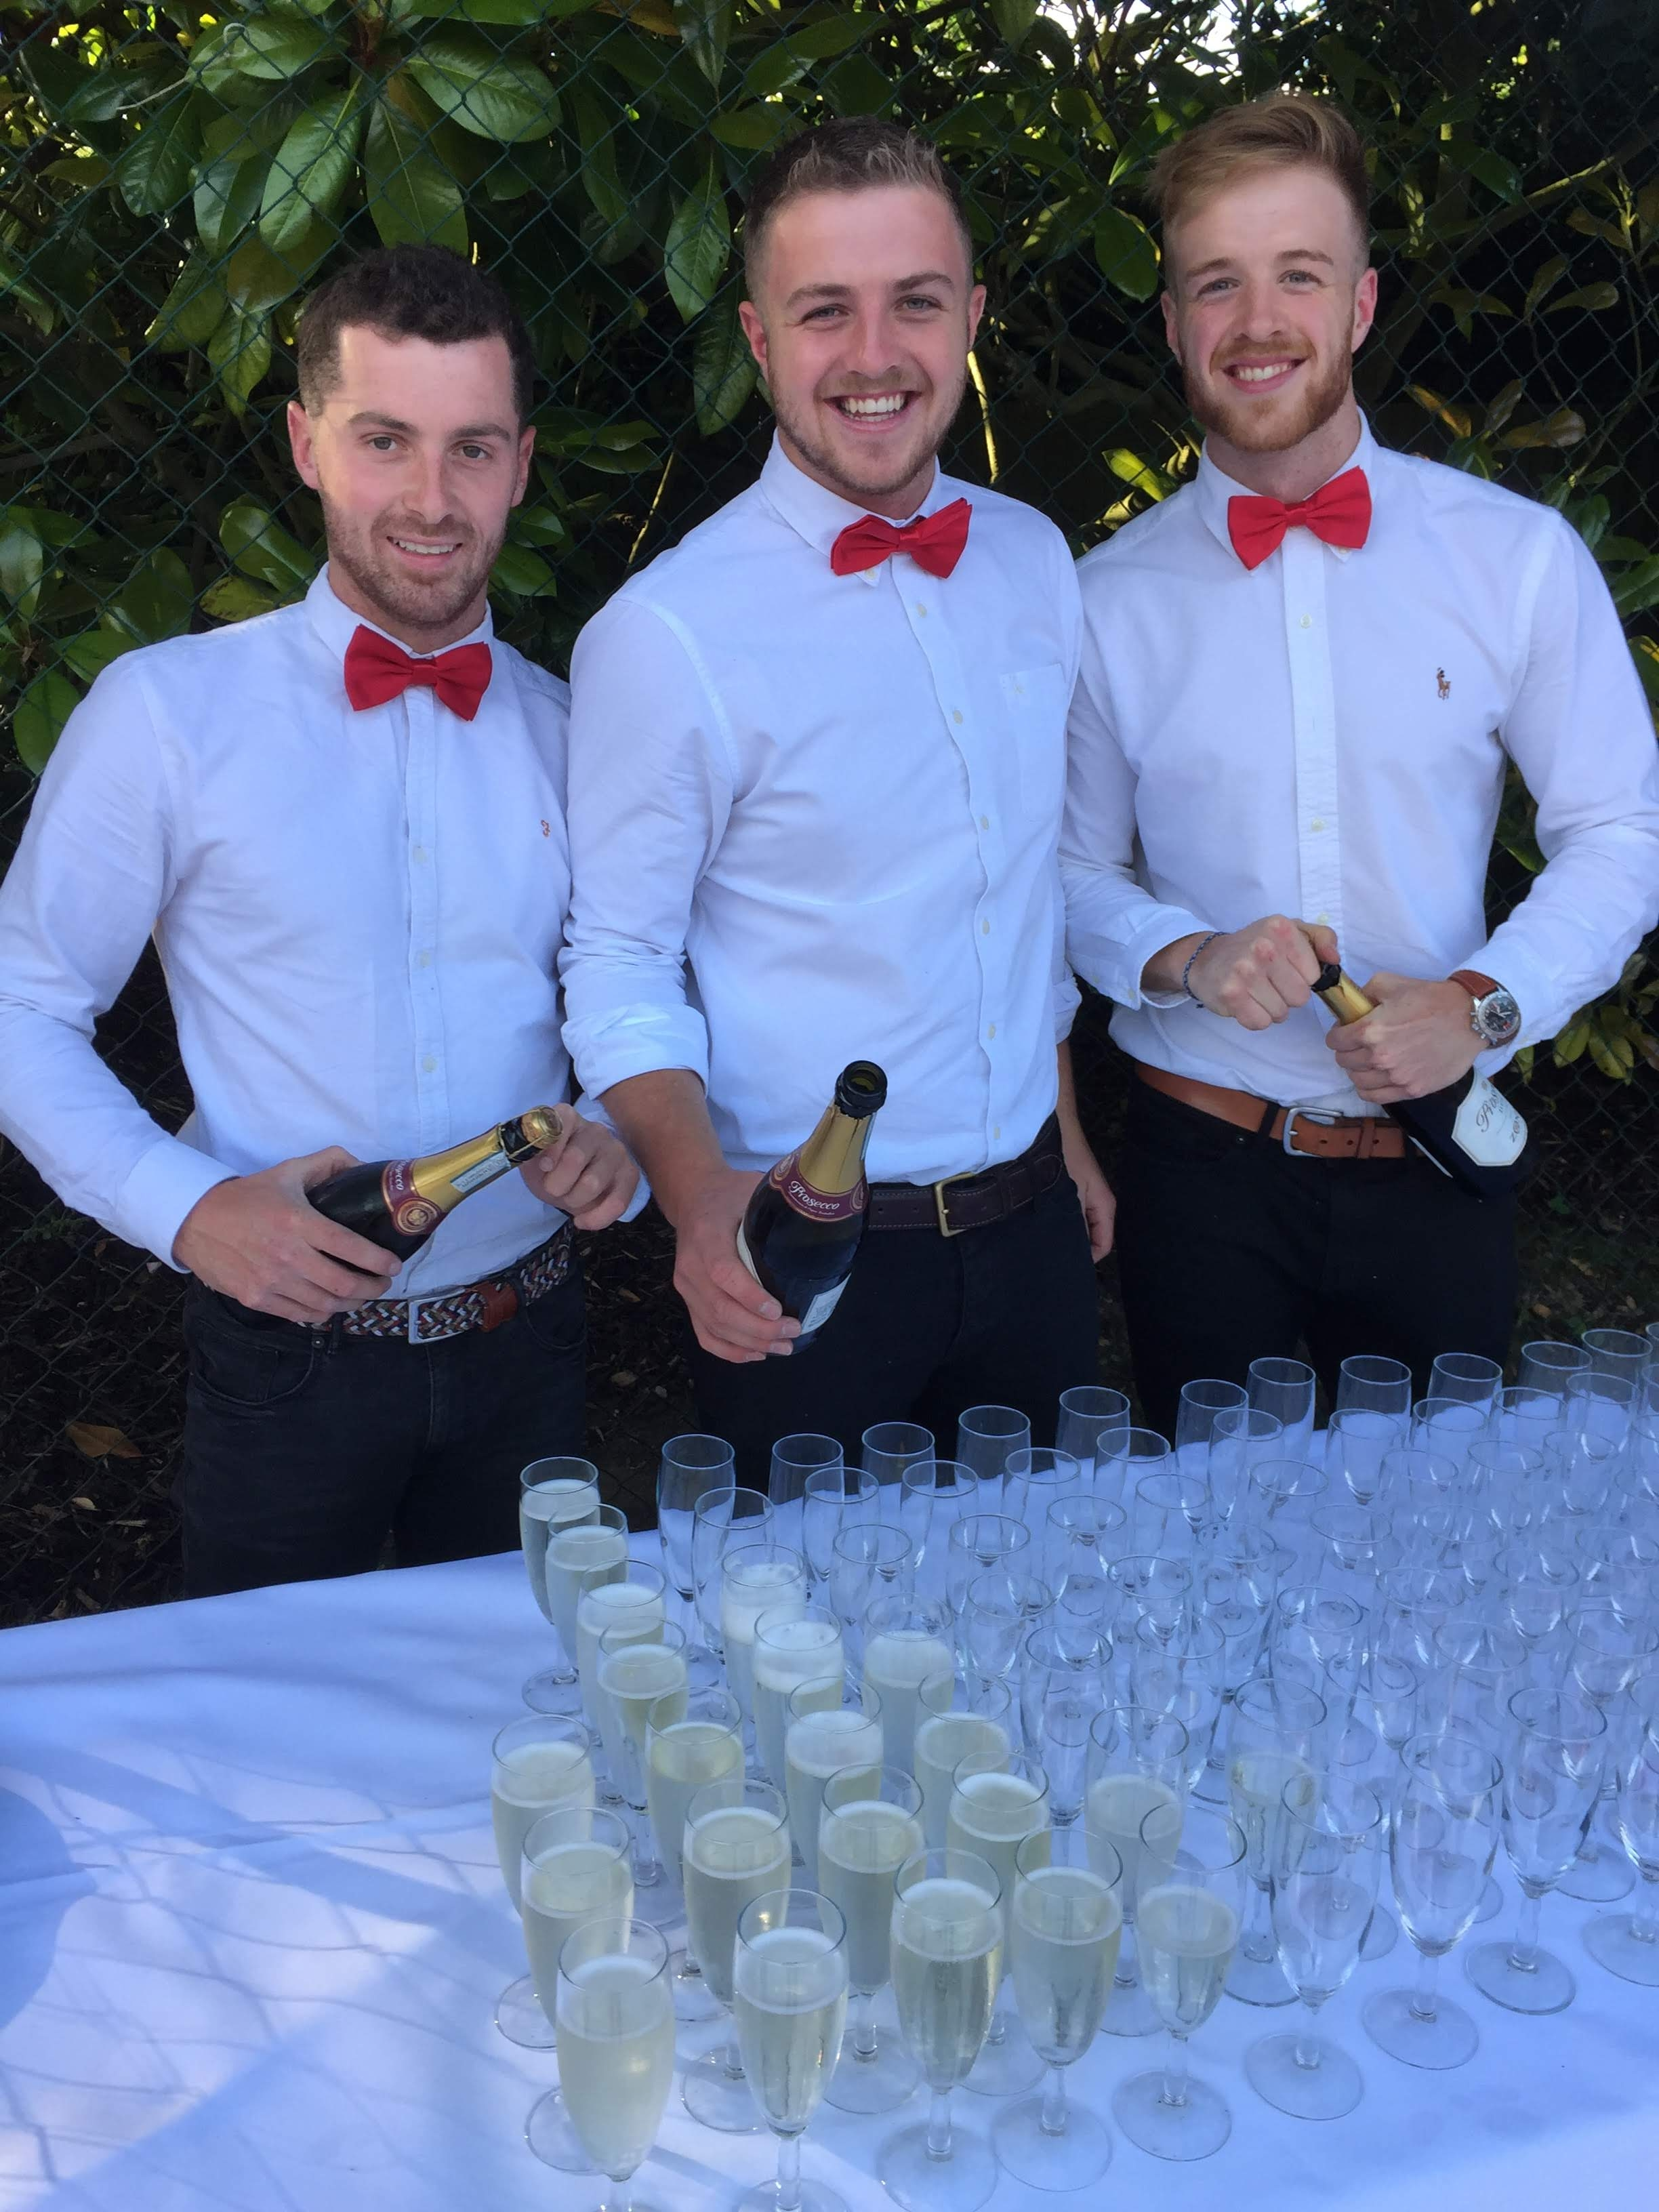 Waiter serving champagne from a tray at a party